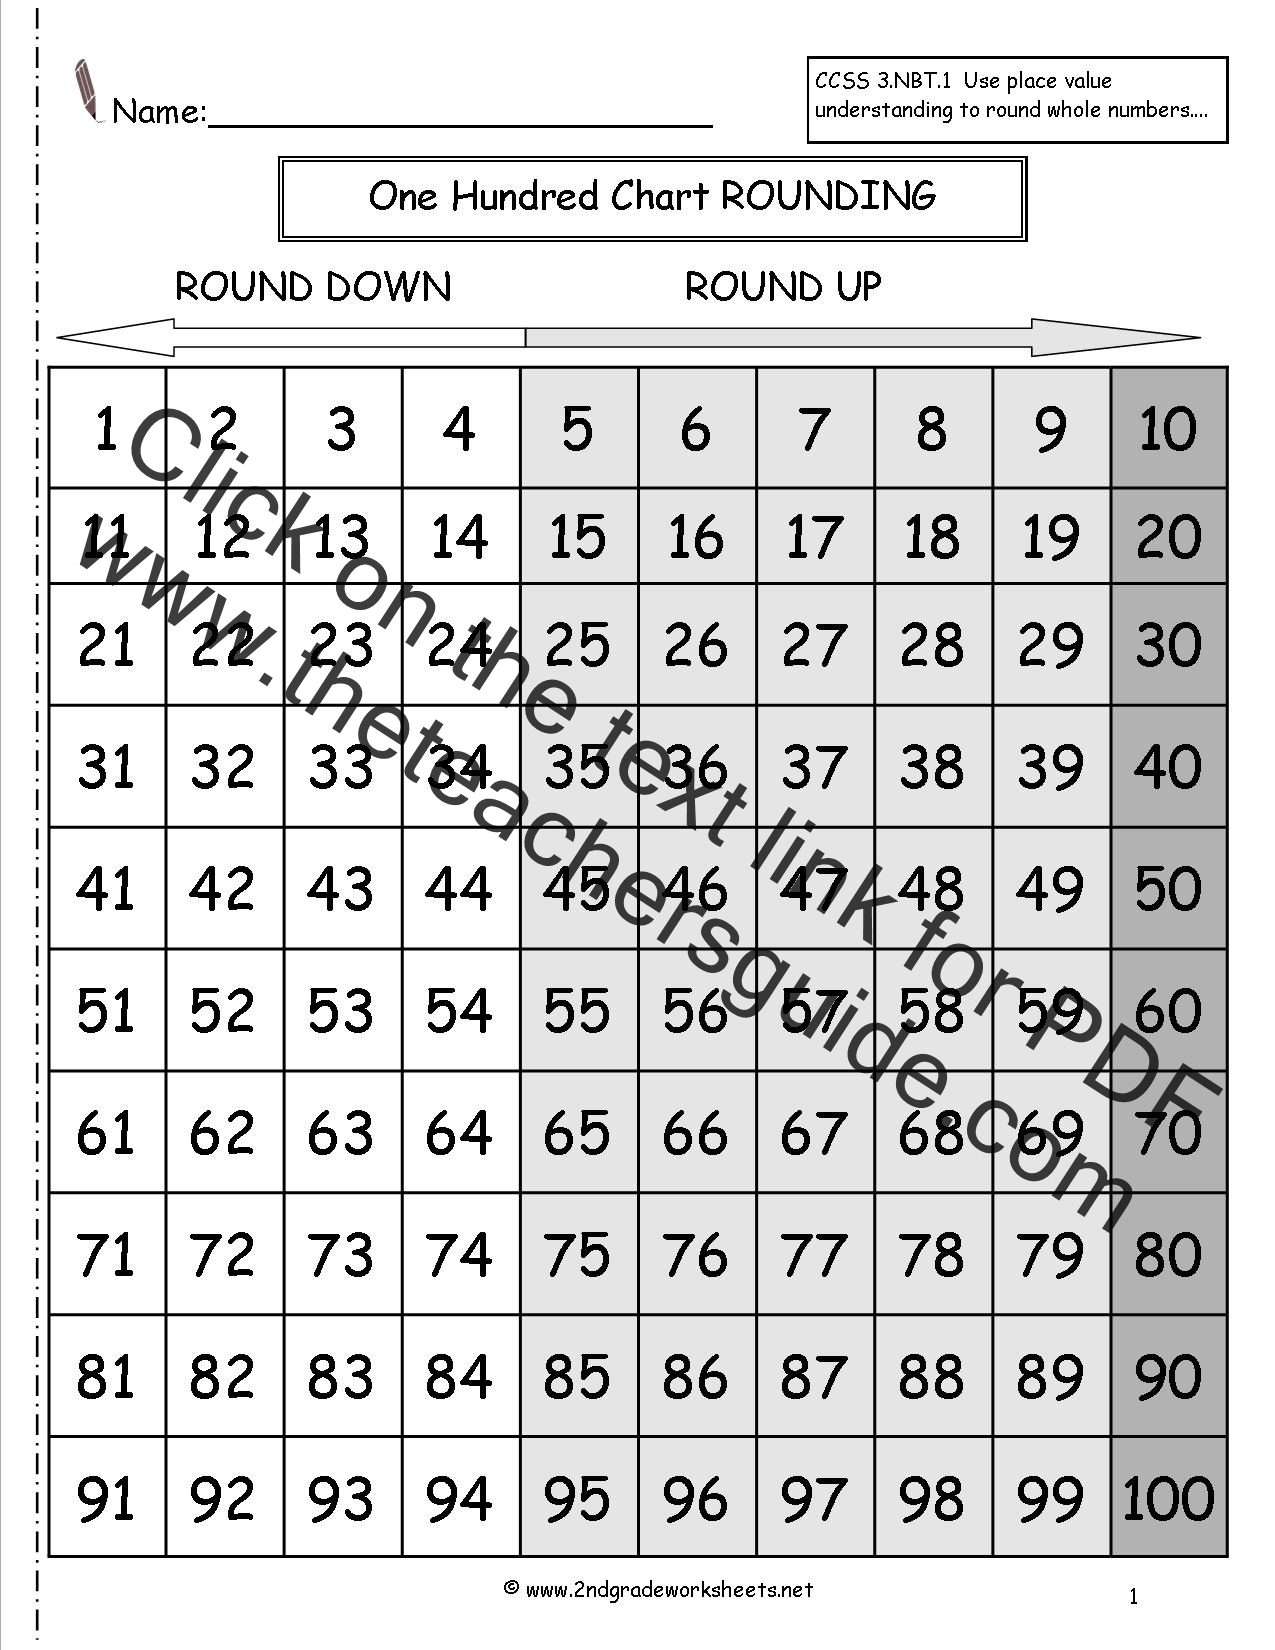 worksheet Rounding To Tens And Hundreds Worksheet rounding whole numbers worksheets one hundred chart worksheet